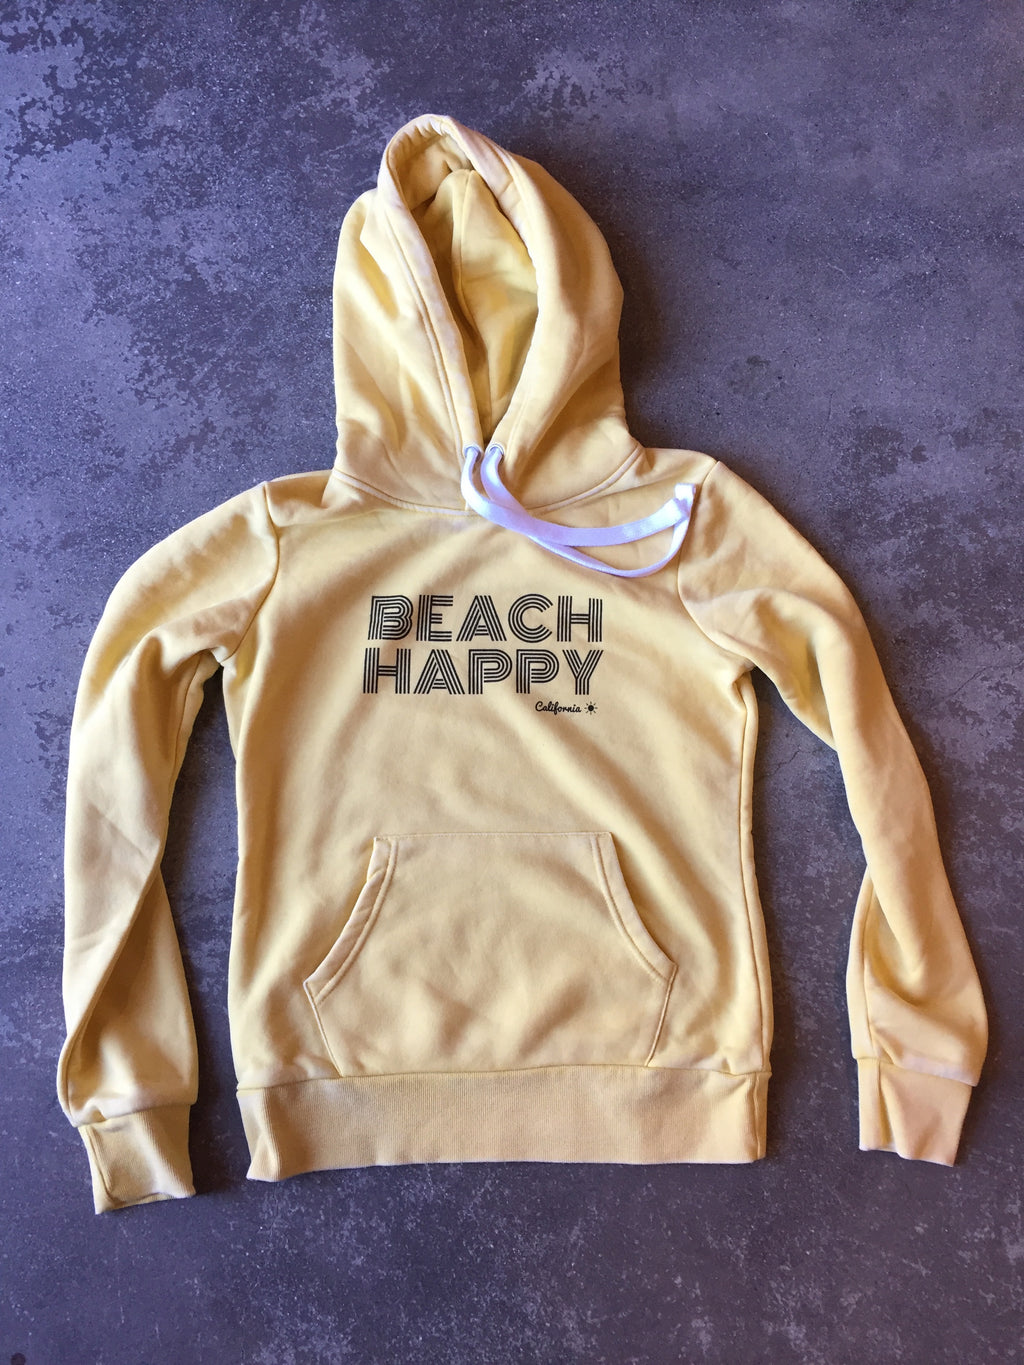 Beach Happy Pullover Sweatshirt SUNFLOWER FADE